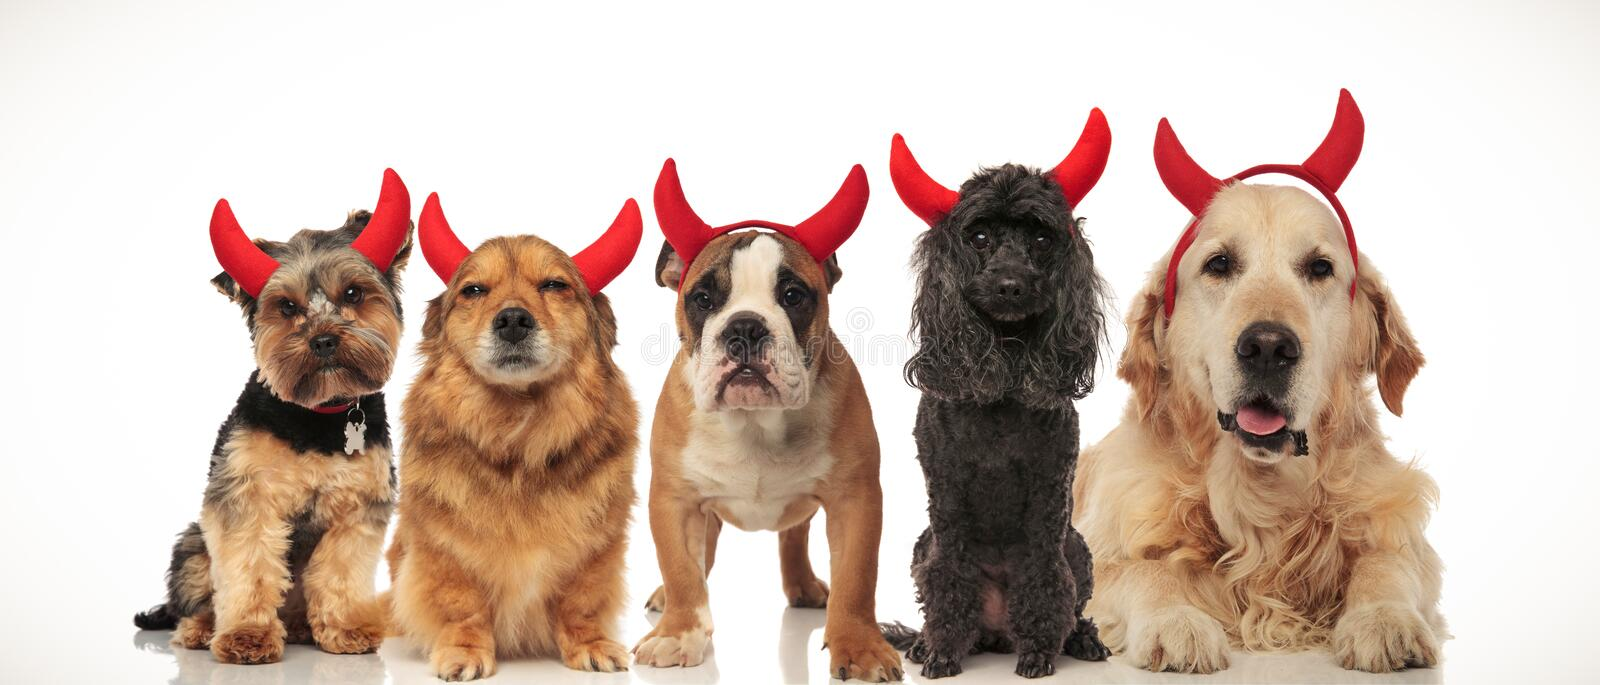 5 adorable puppies dressed as devils for halloween royalty free stock photos